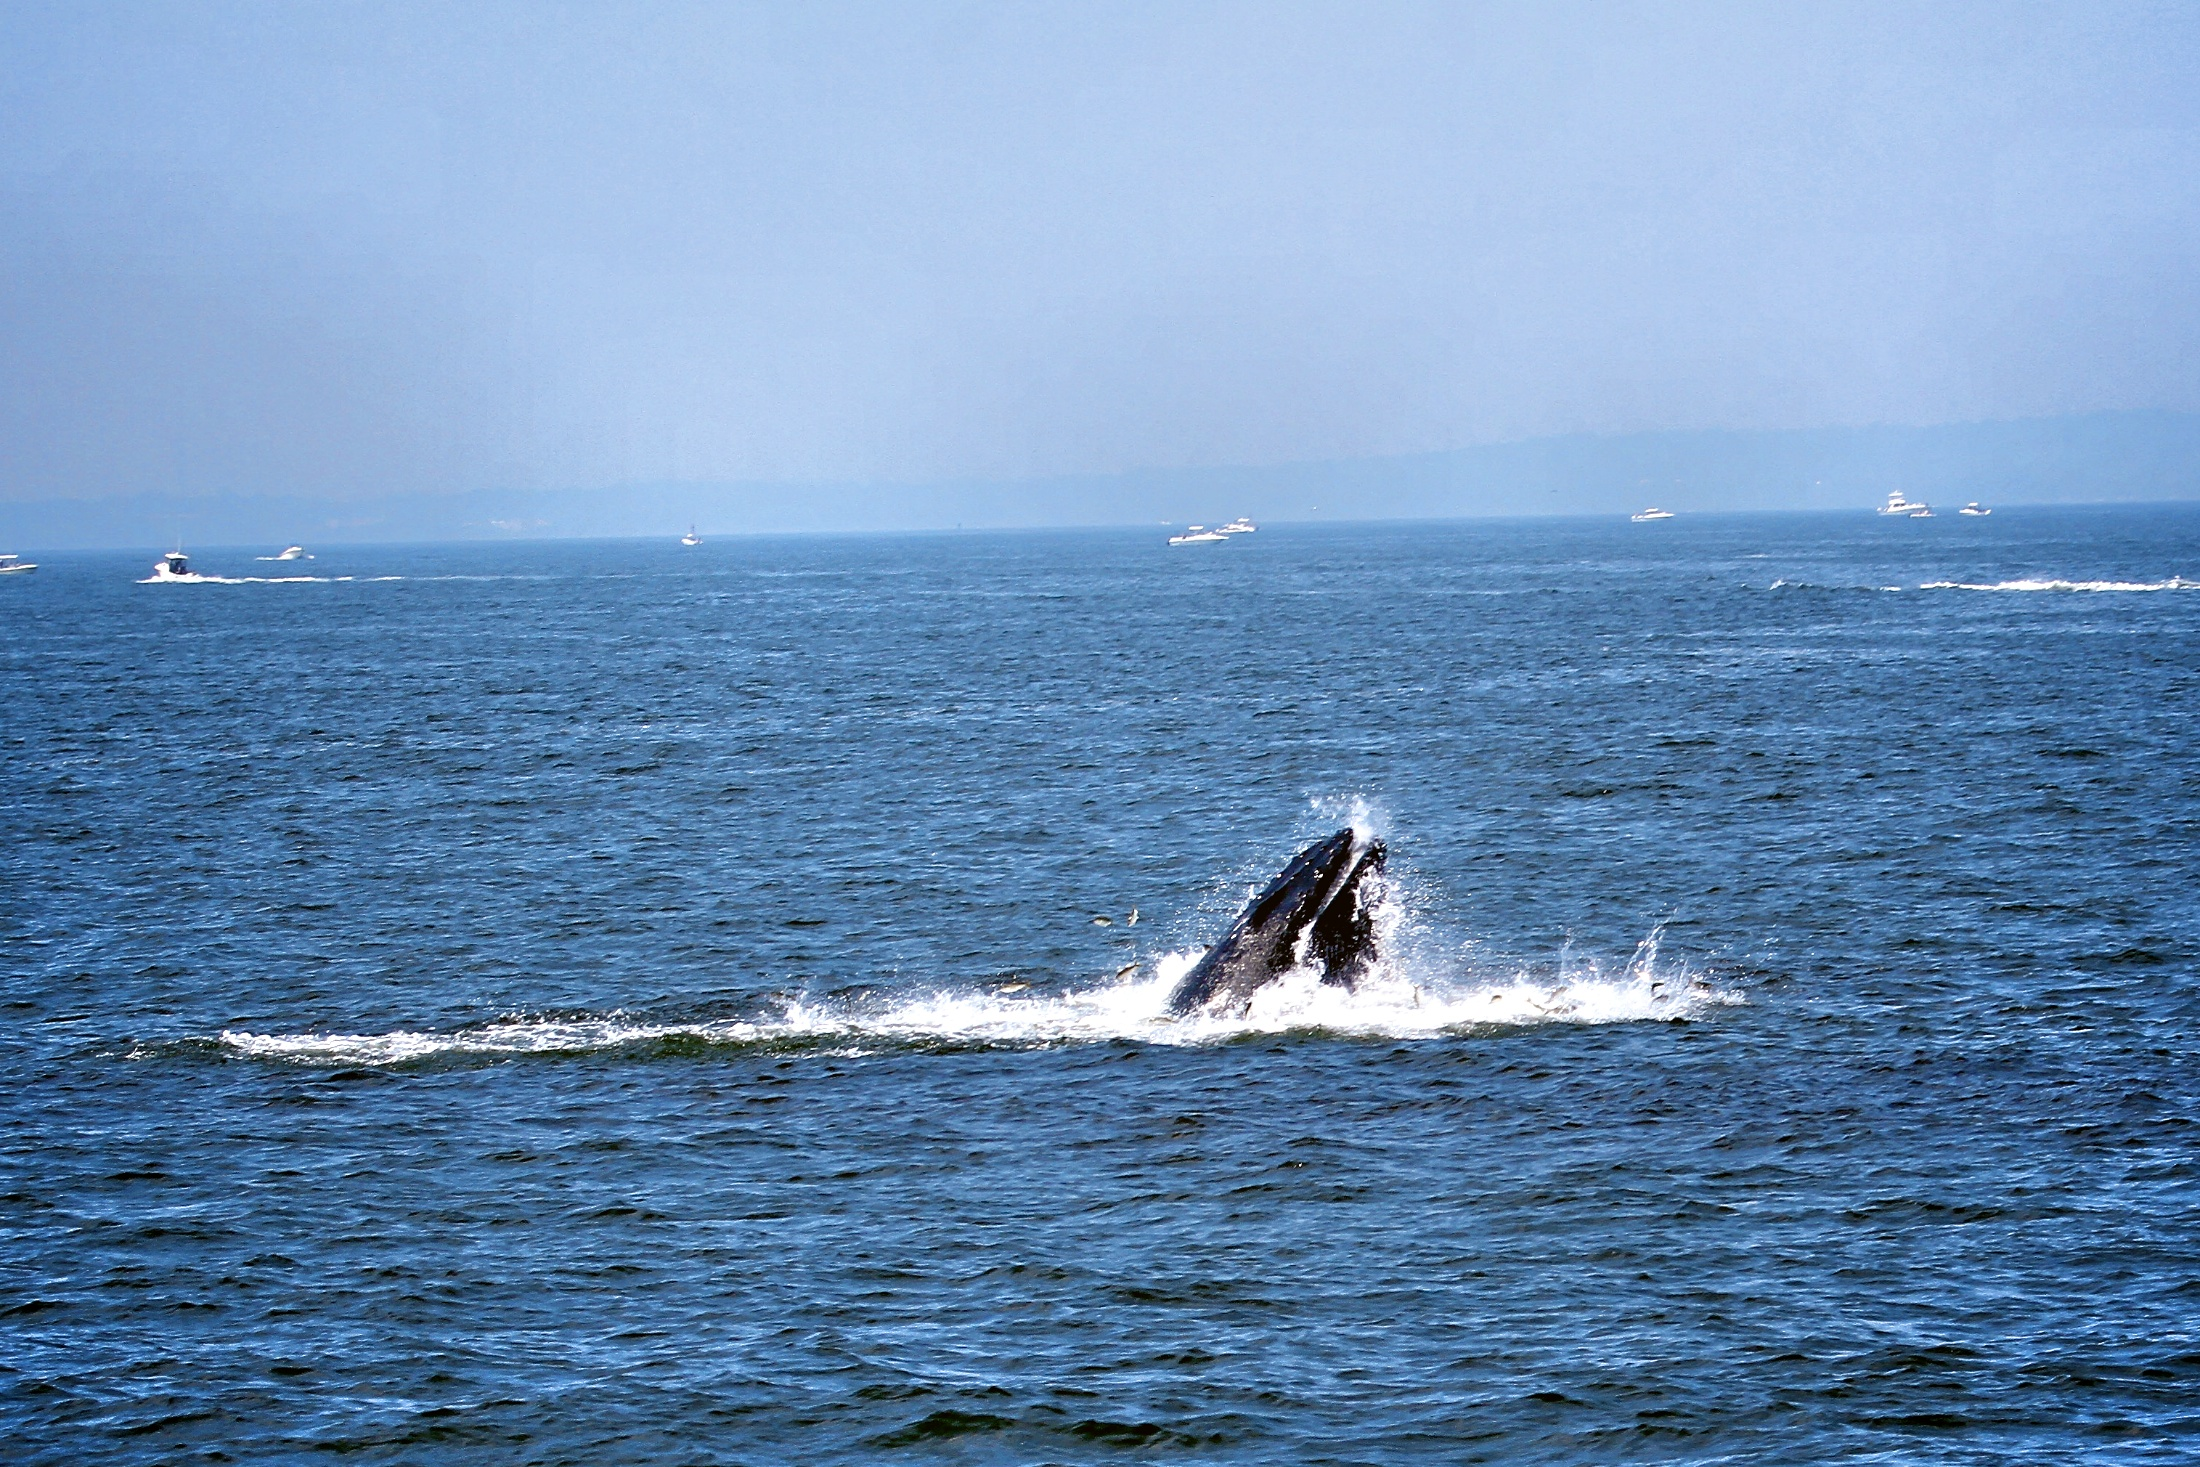 This excursion is really awesome. If you have time you should not miss it. (We are not getting any money from them…;-) ) More infos: http://big-apple.tv/2012/08/24/whale-watching-near-new-york/ Whale watching in Full Screen: http://big-apple.tv/whale-watching-fullscreen/